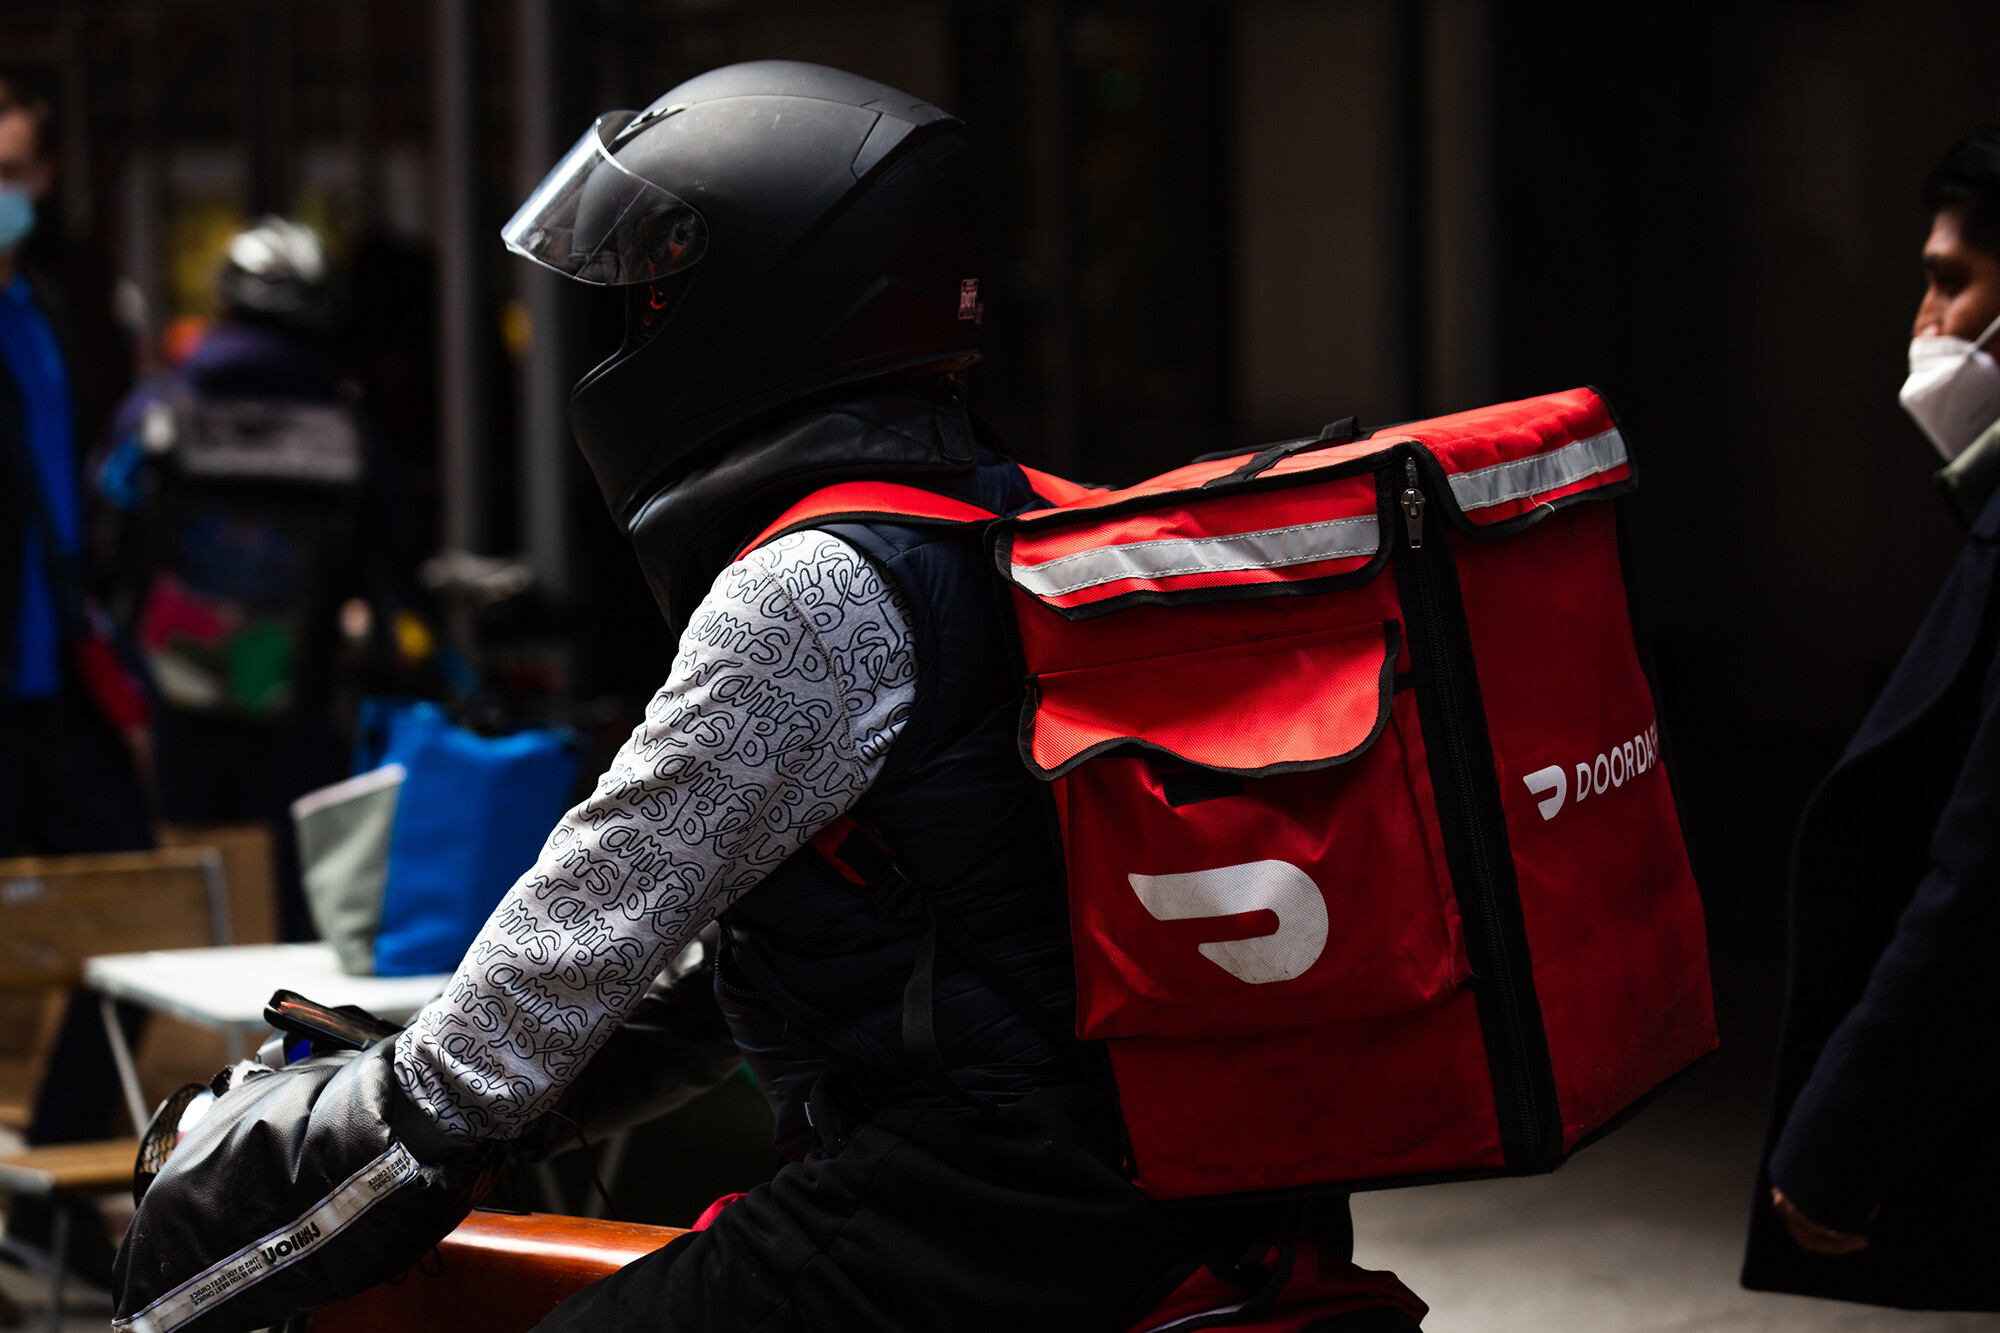 DoorDash, Grubhub and Uber Eats sue New York City over delivery fee caps